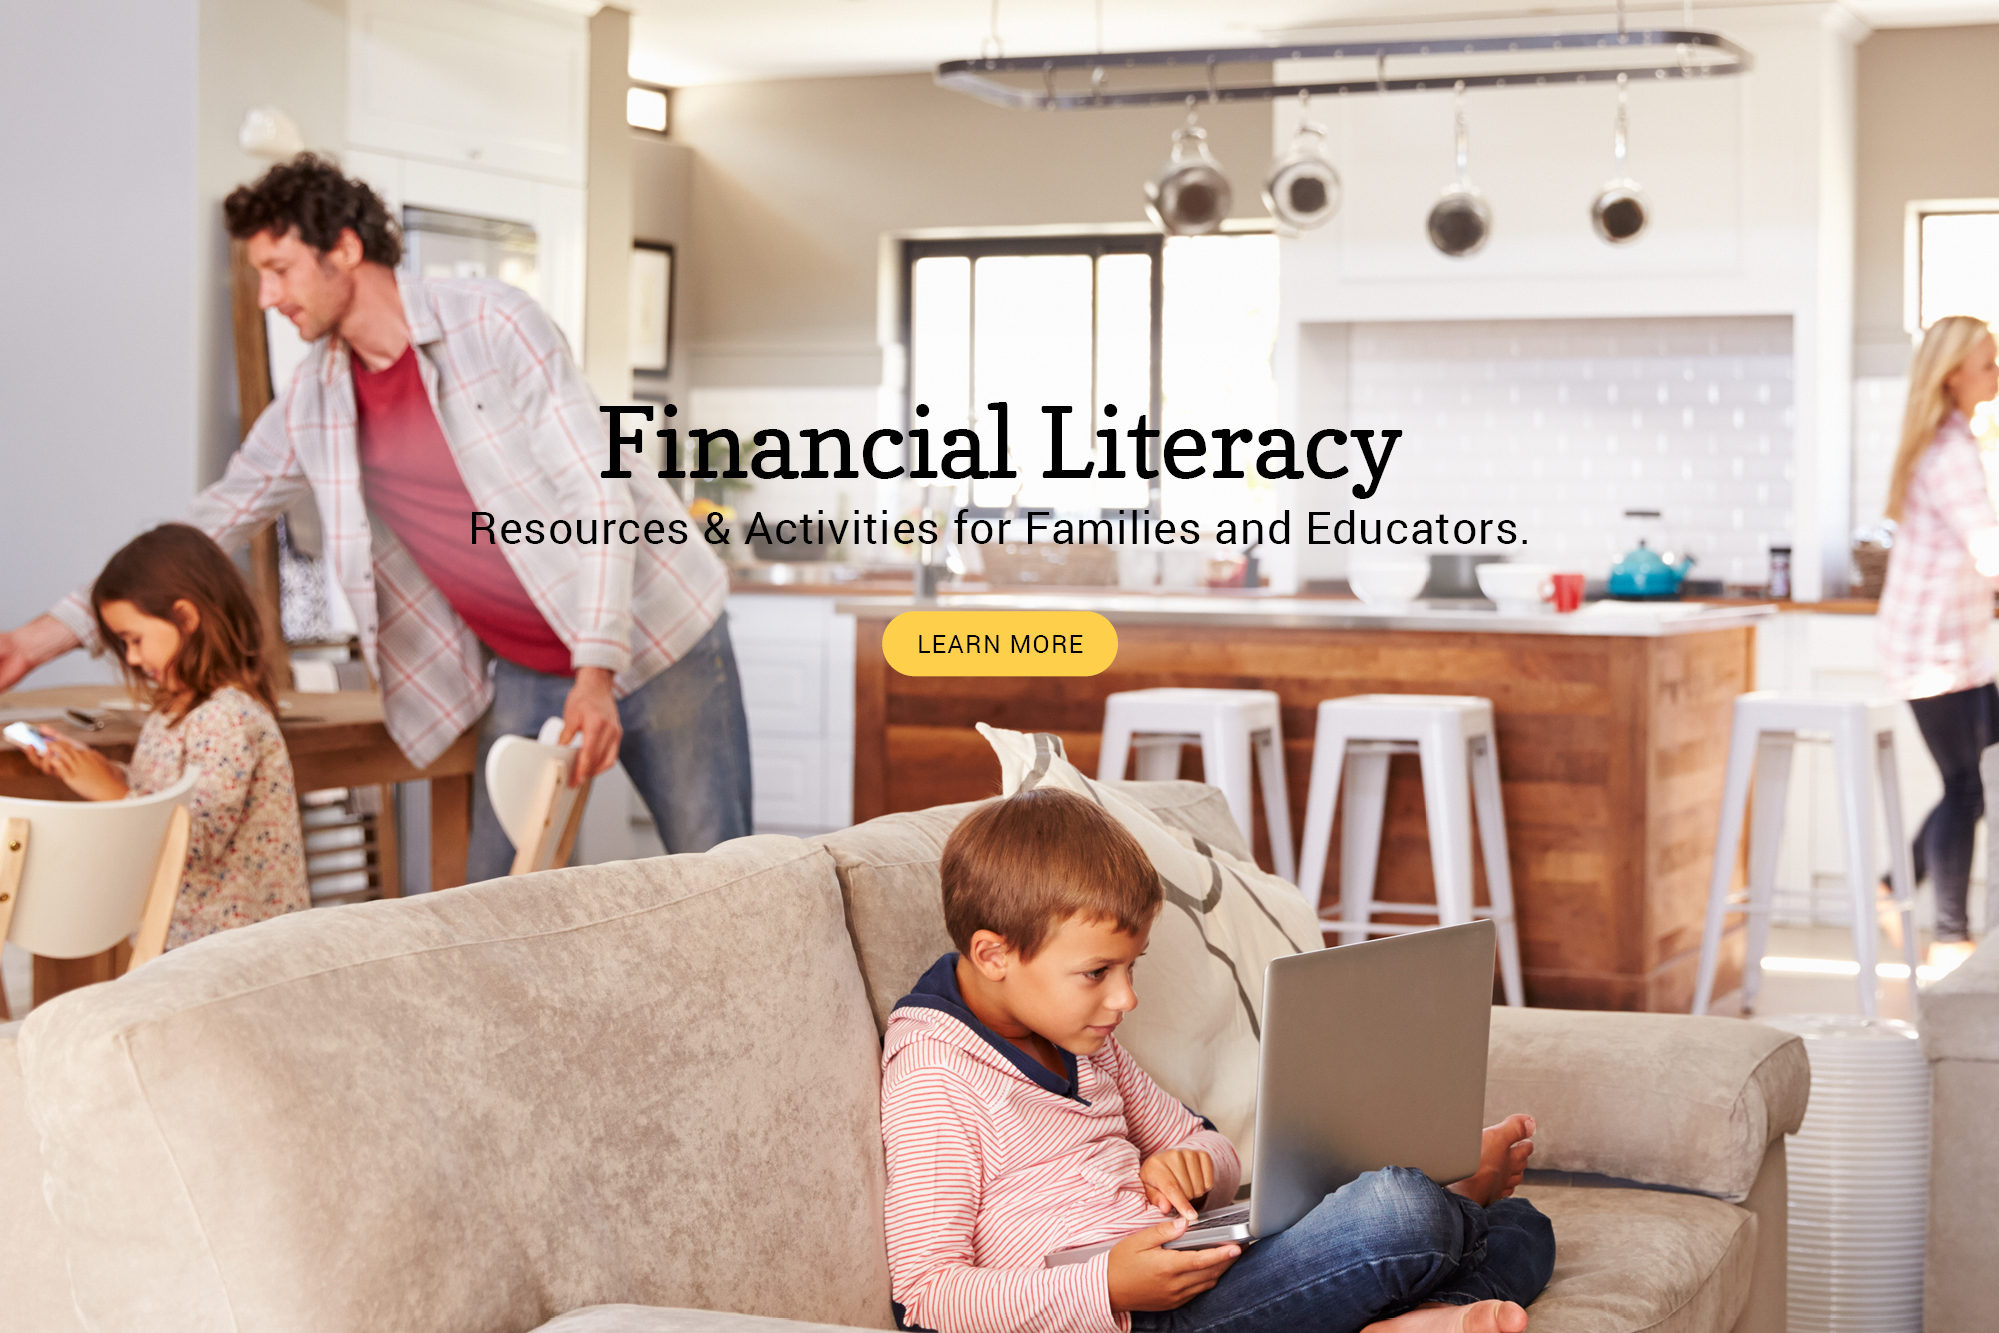 Financial Literacy Resources for families & educators